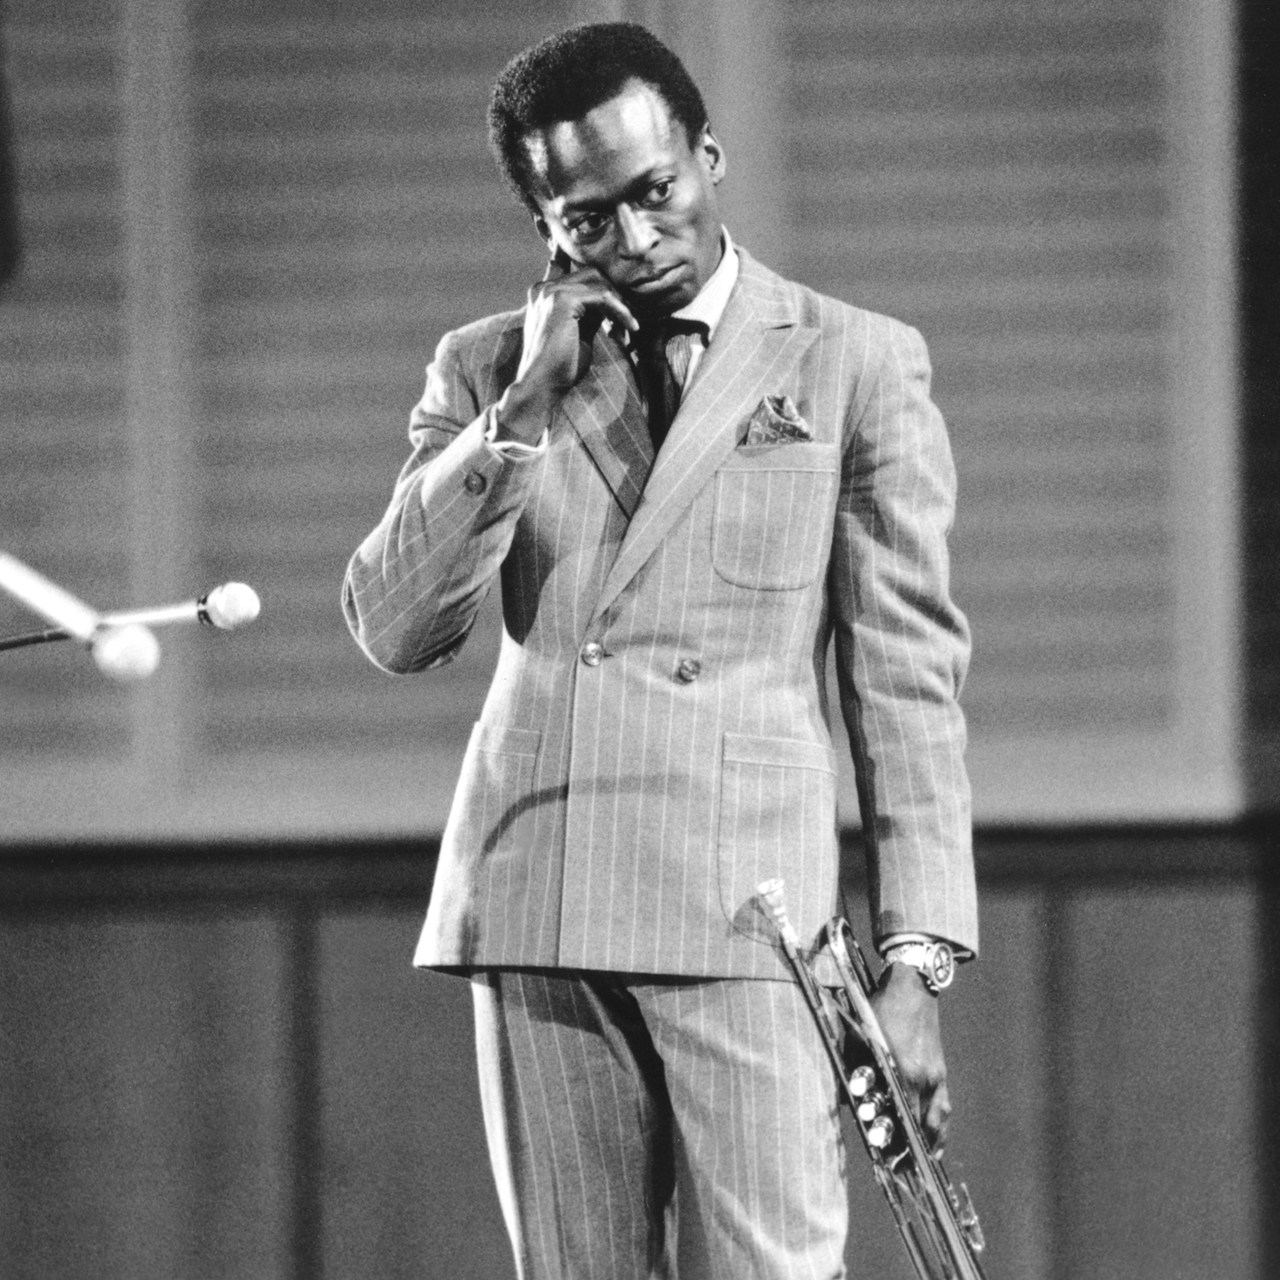 Miles-Davis-hp-GQ-08Jul15_getty_bt_1280x1280